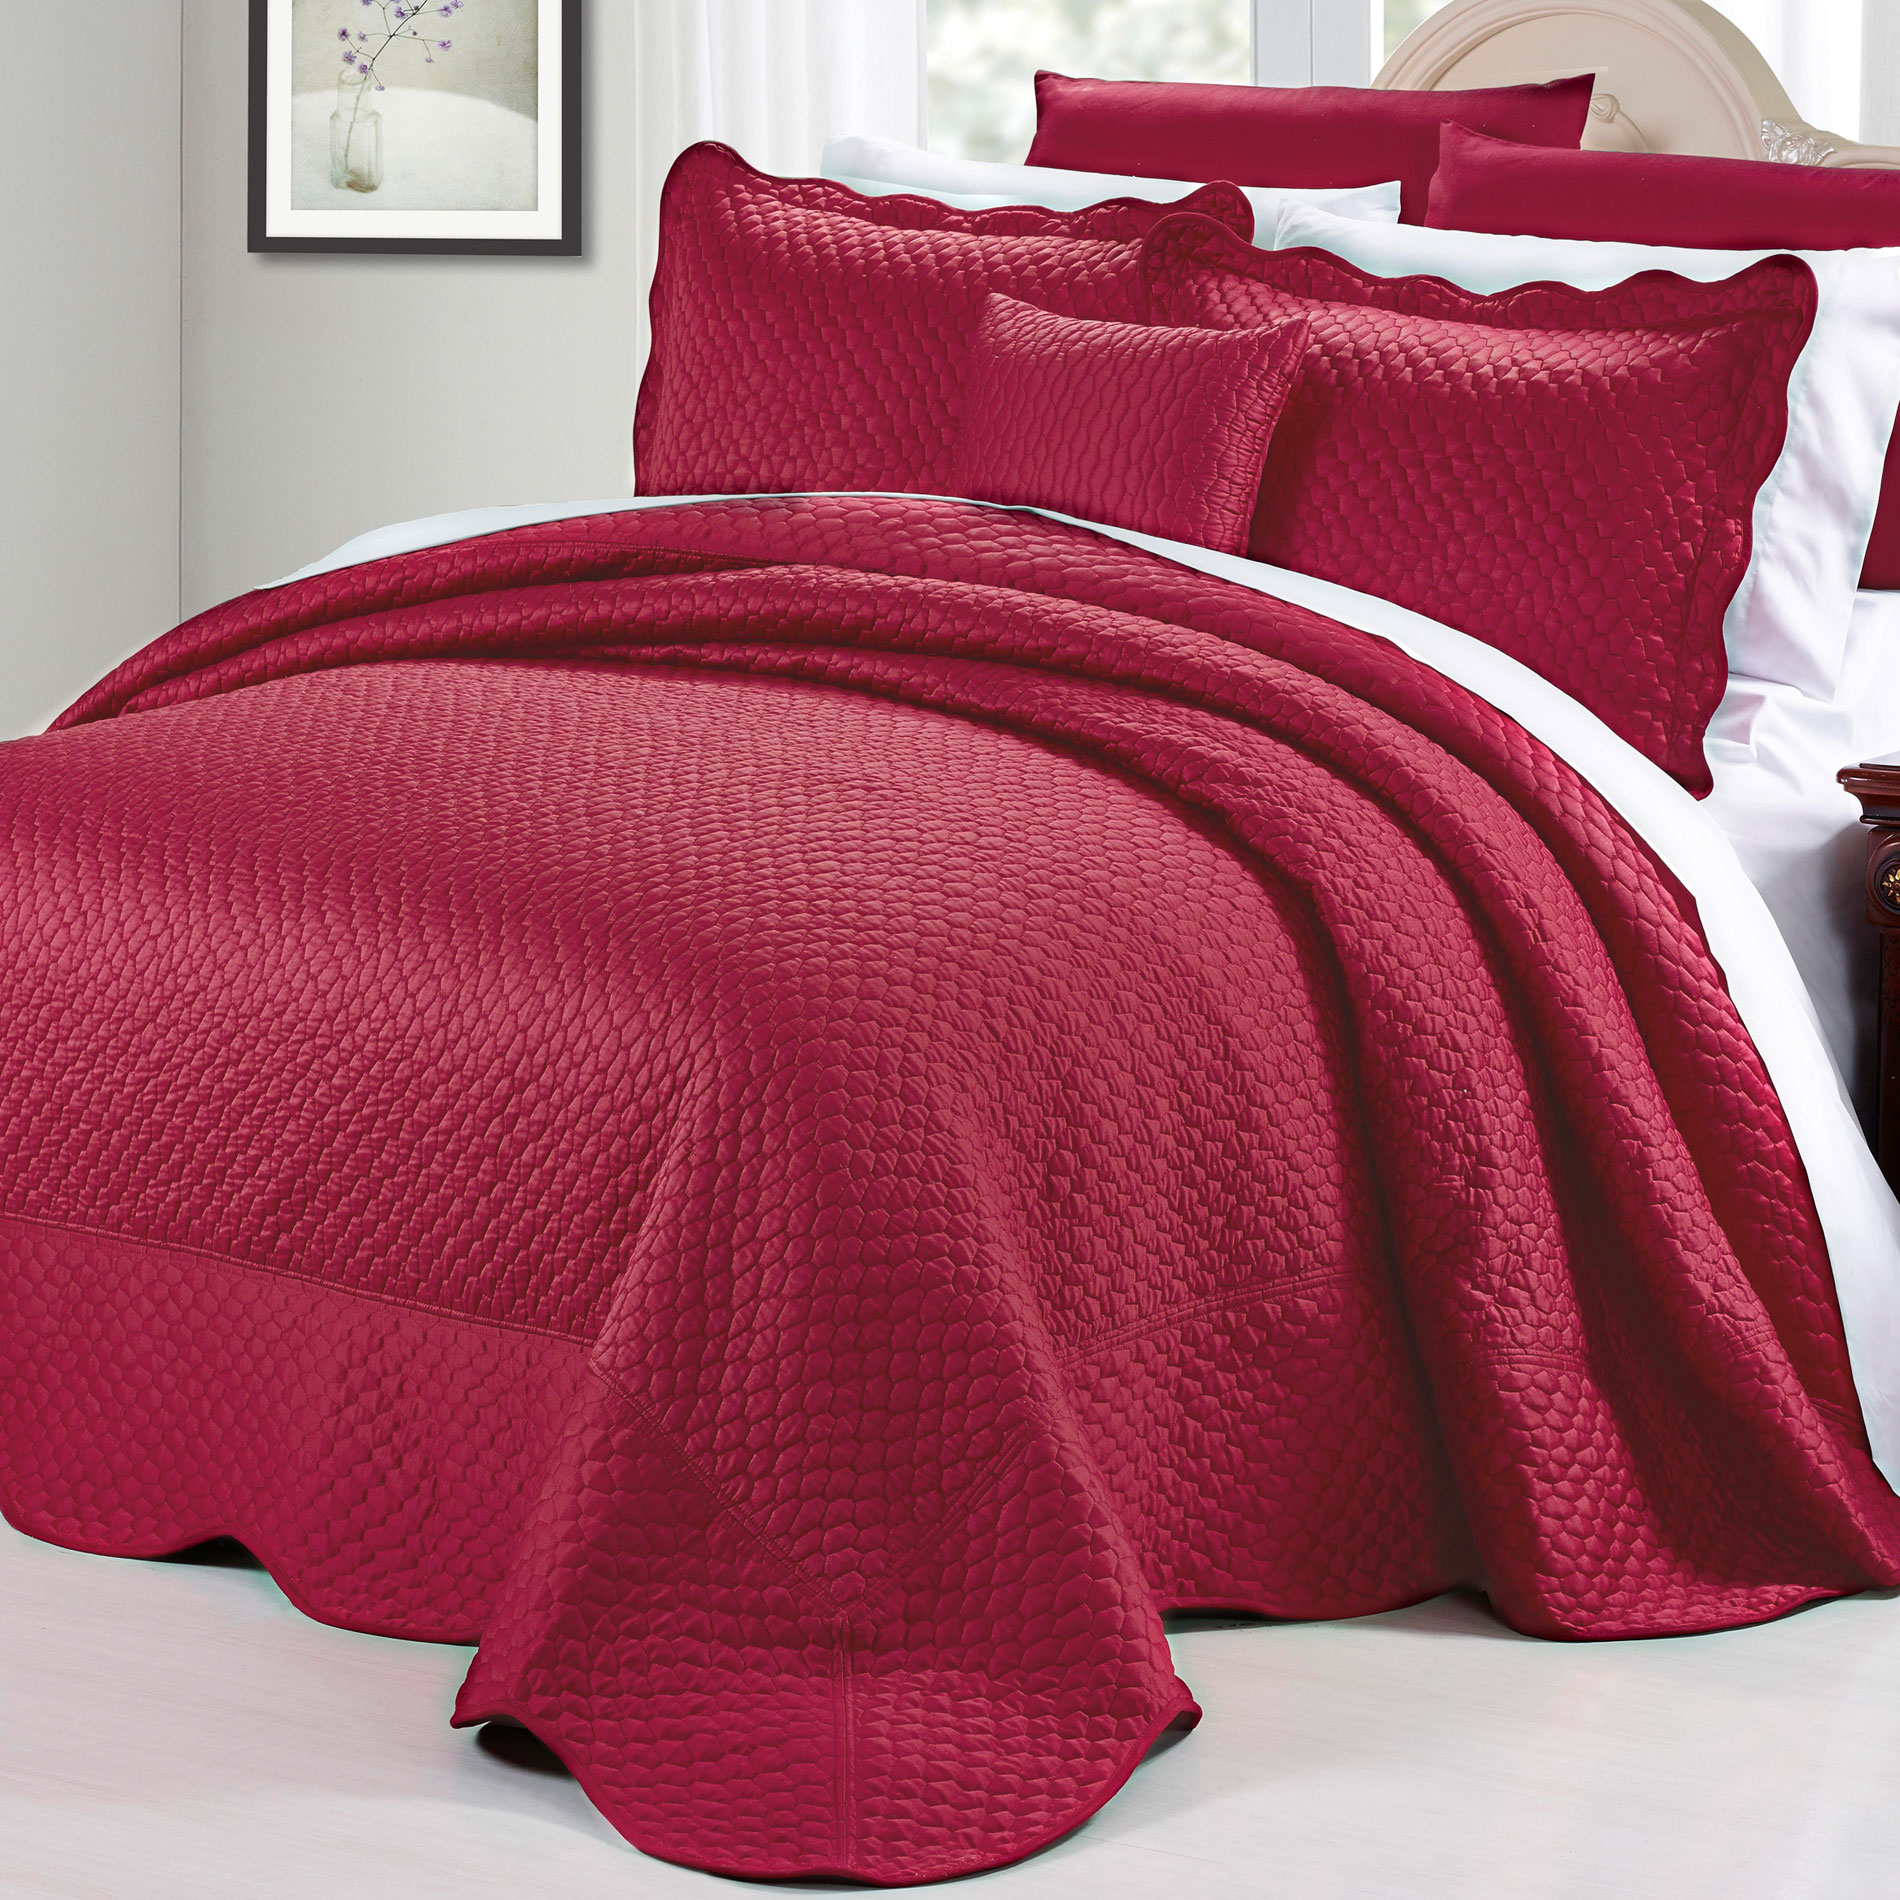 Serenta Matte Satin 4 Piece Bed Spread Set